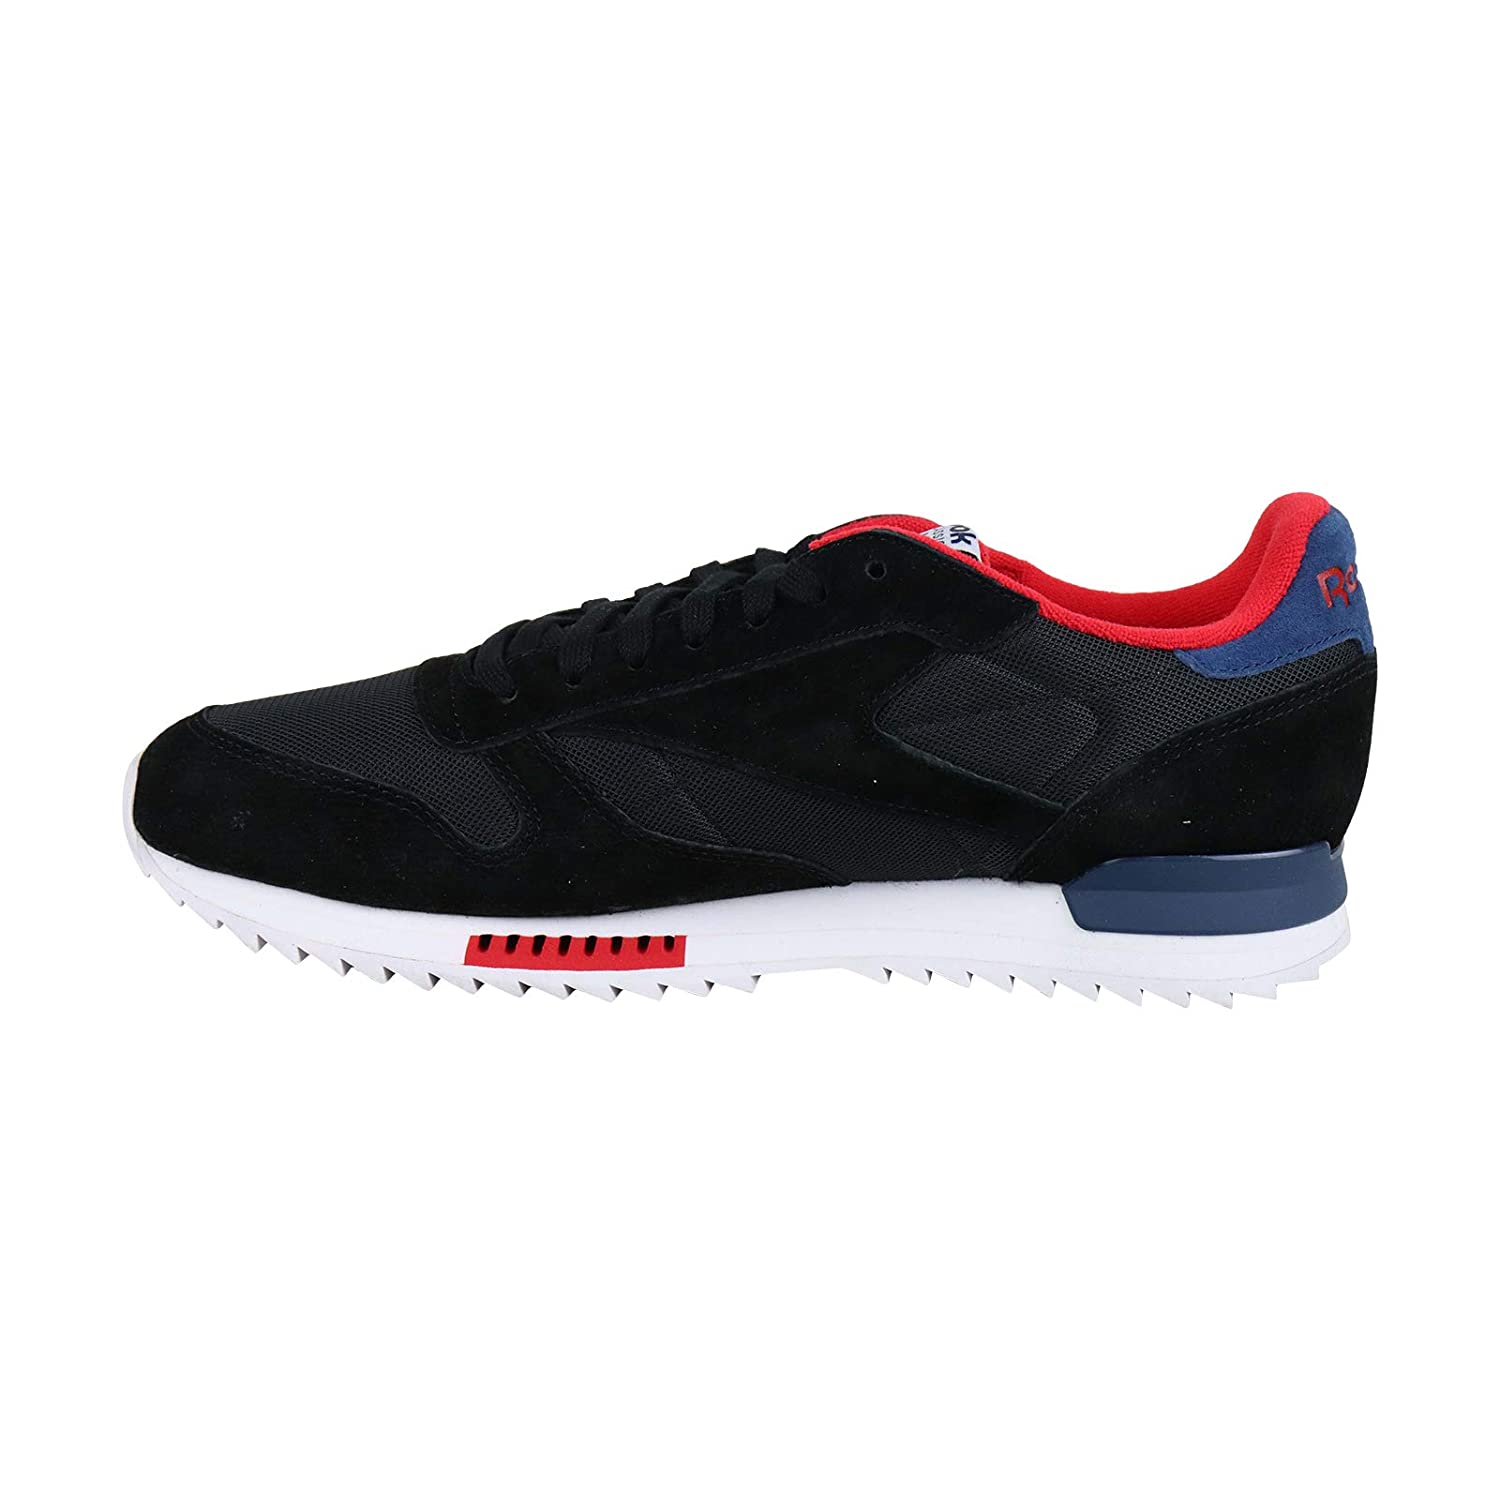 Reebok Classic Leather Ripple Clip Mens Black Suede//Mesh Sneakers Shoes